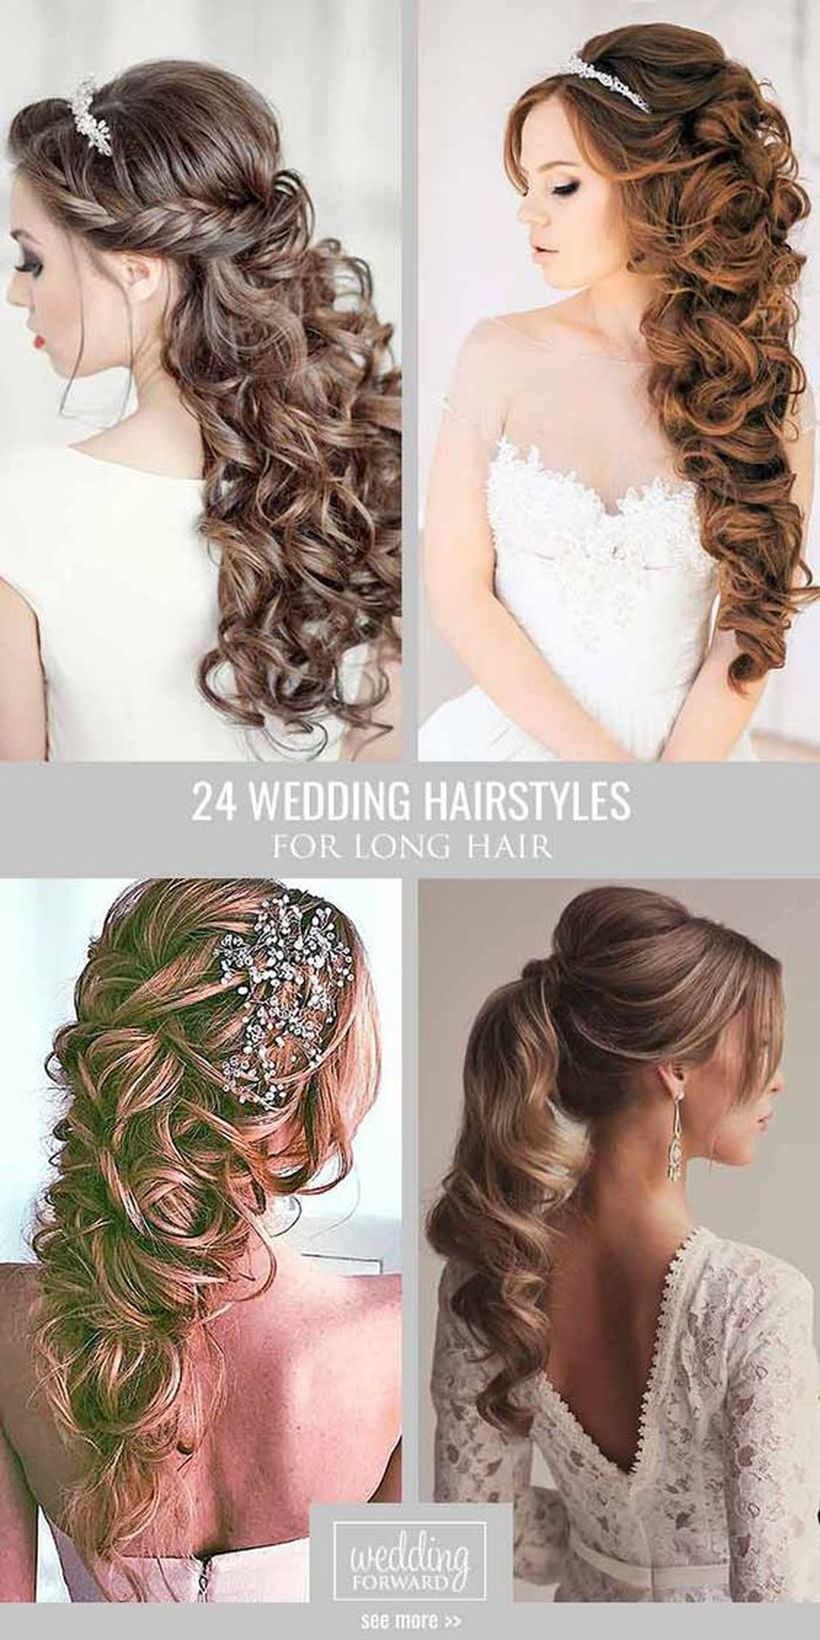 Gorgeous rustic wedding hairstyles ideas 28